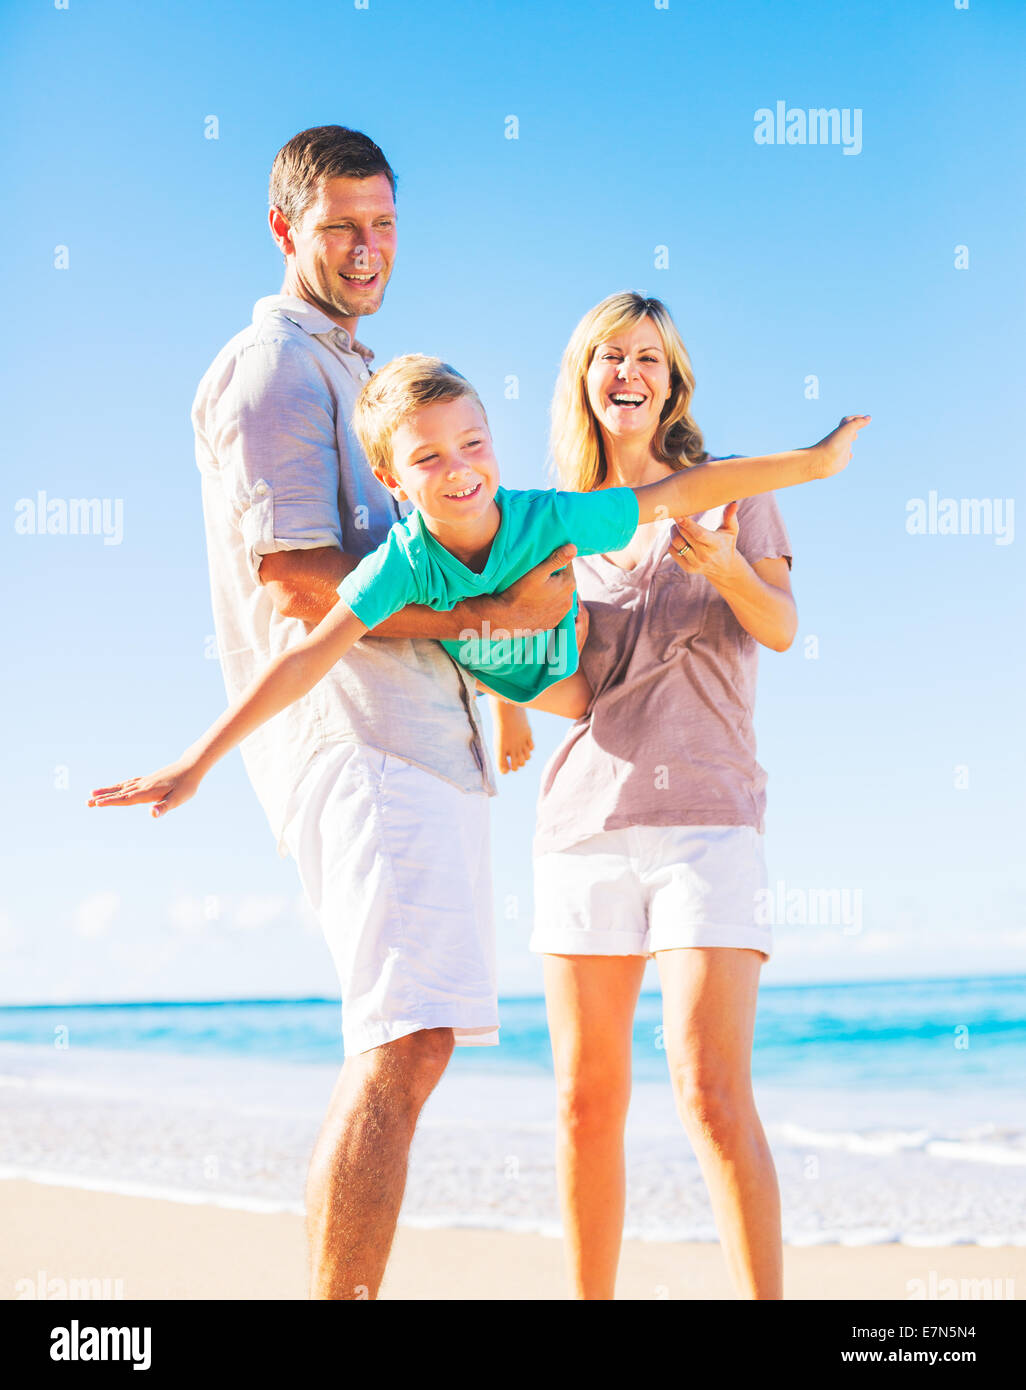 Family Playing on the Beach - Stock Image